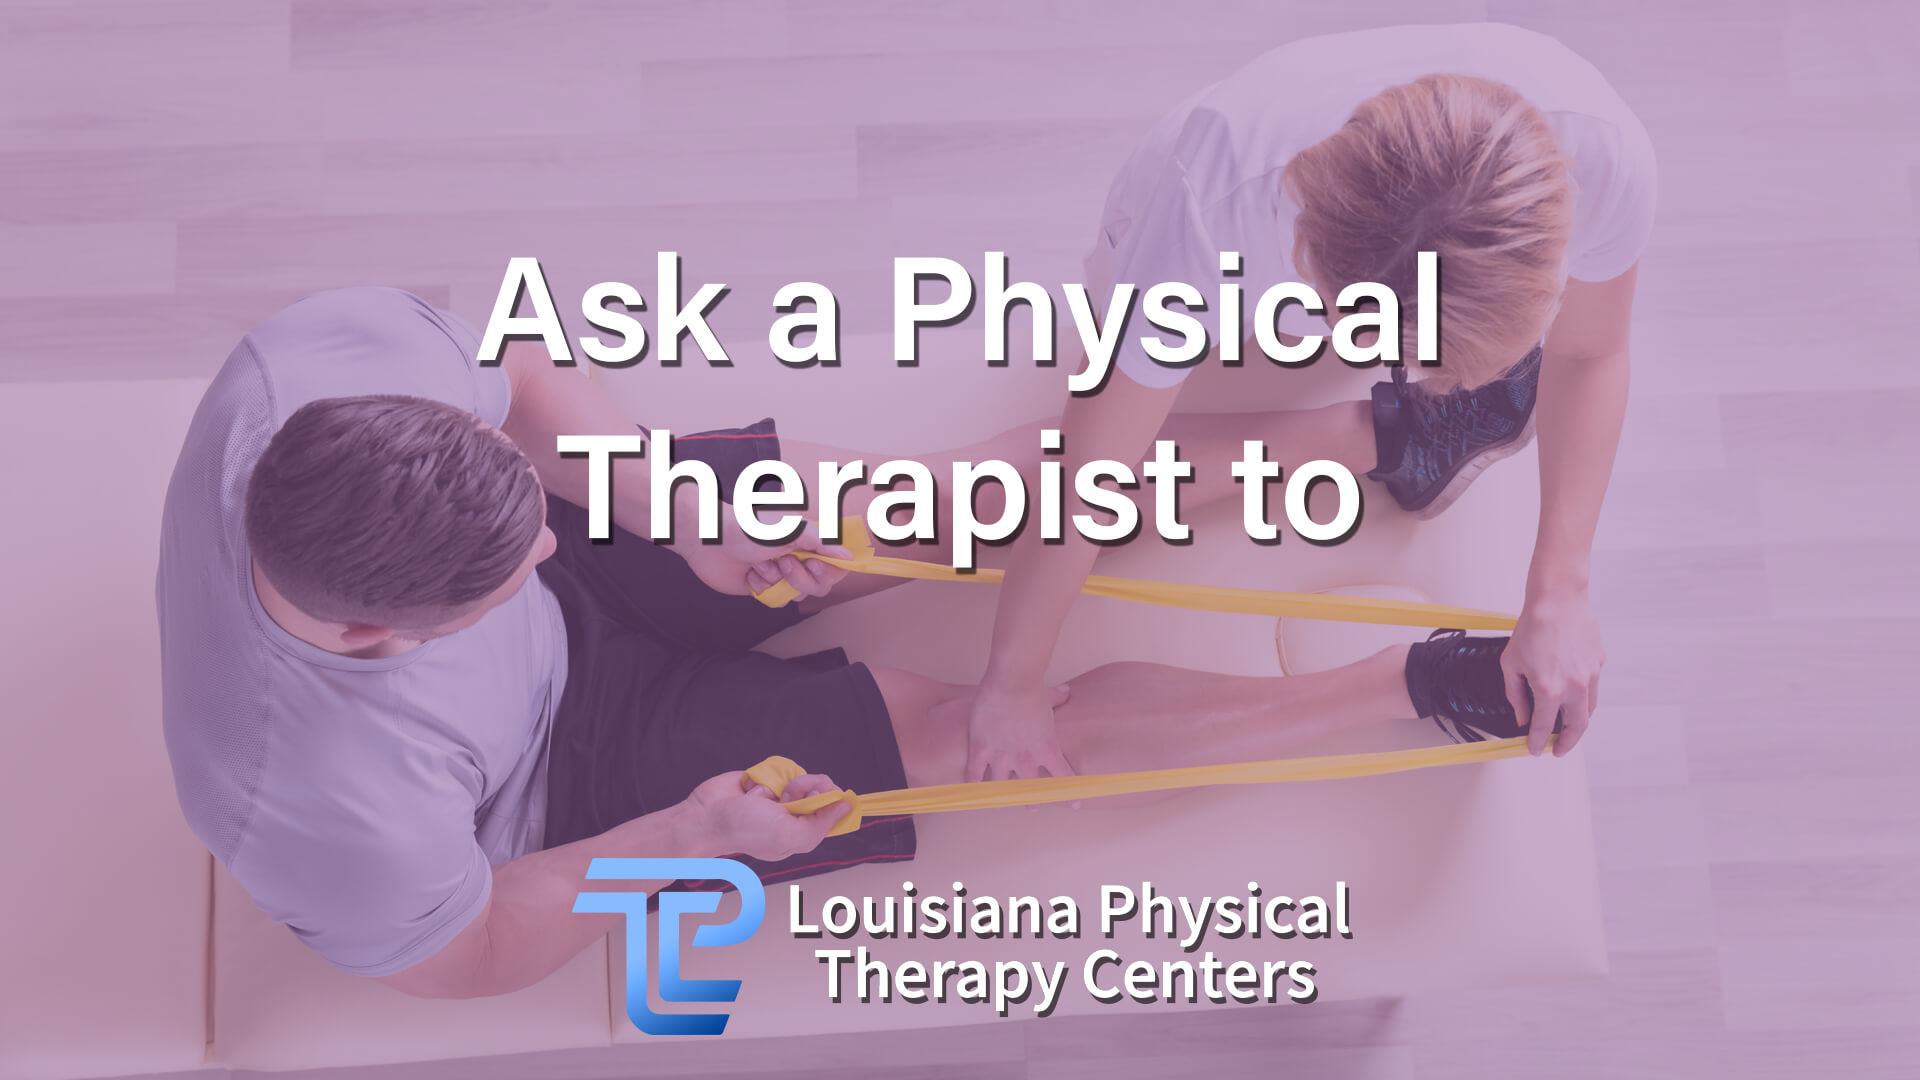 Ask a physical therapist to